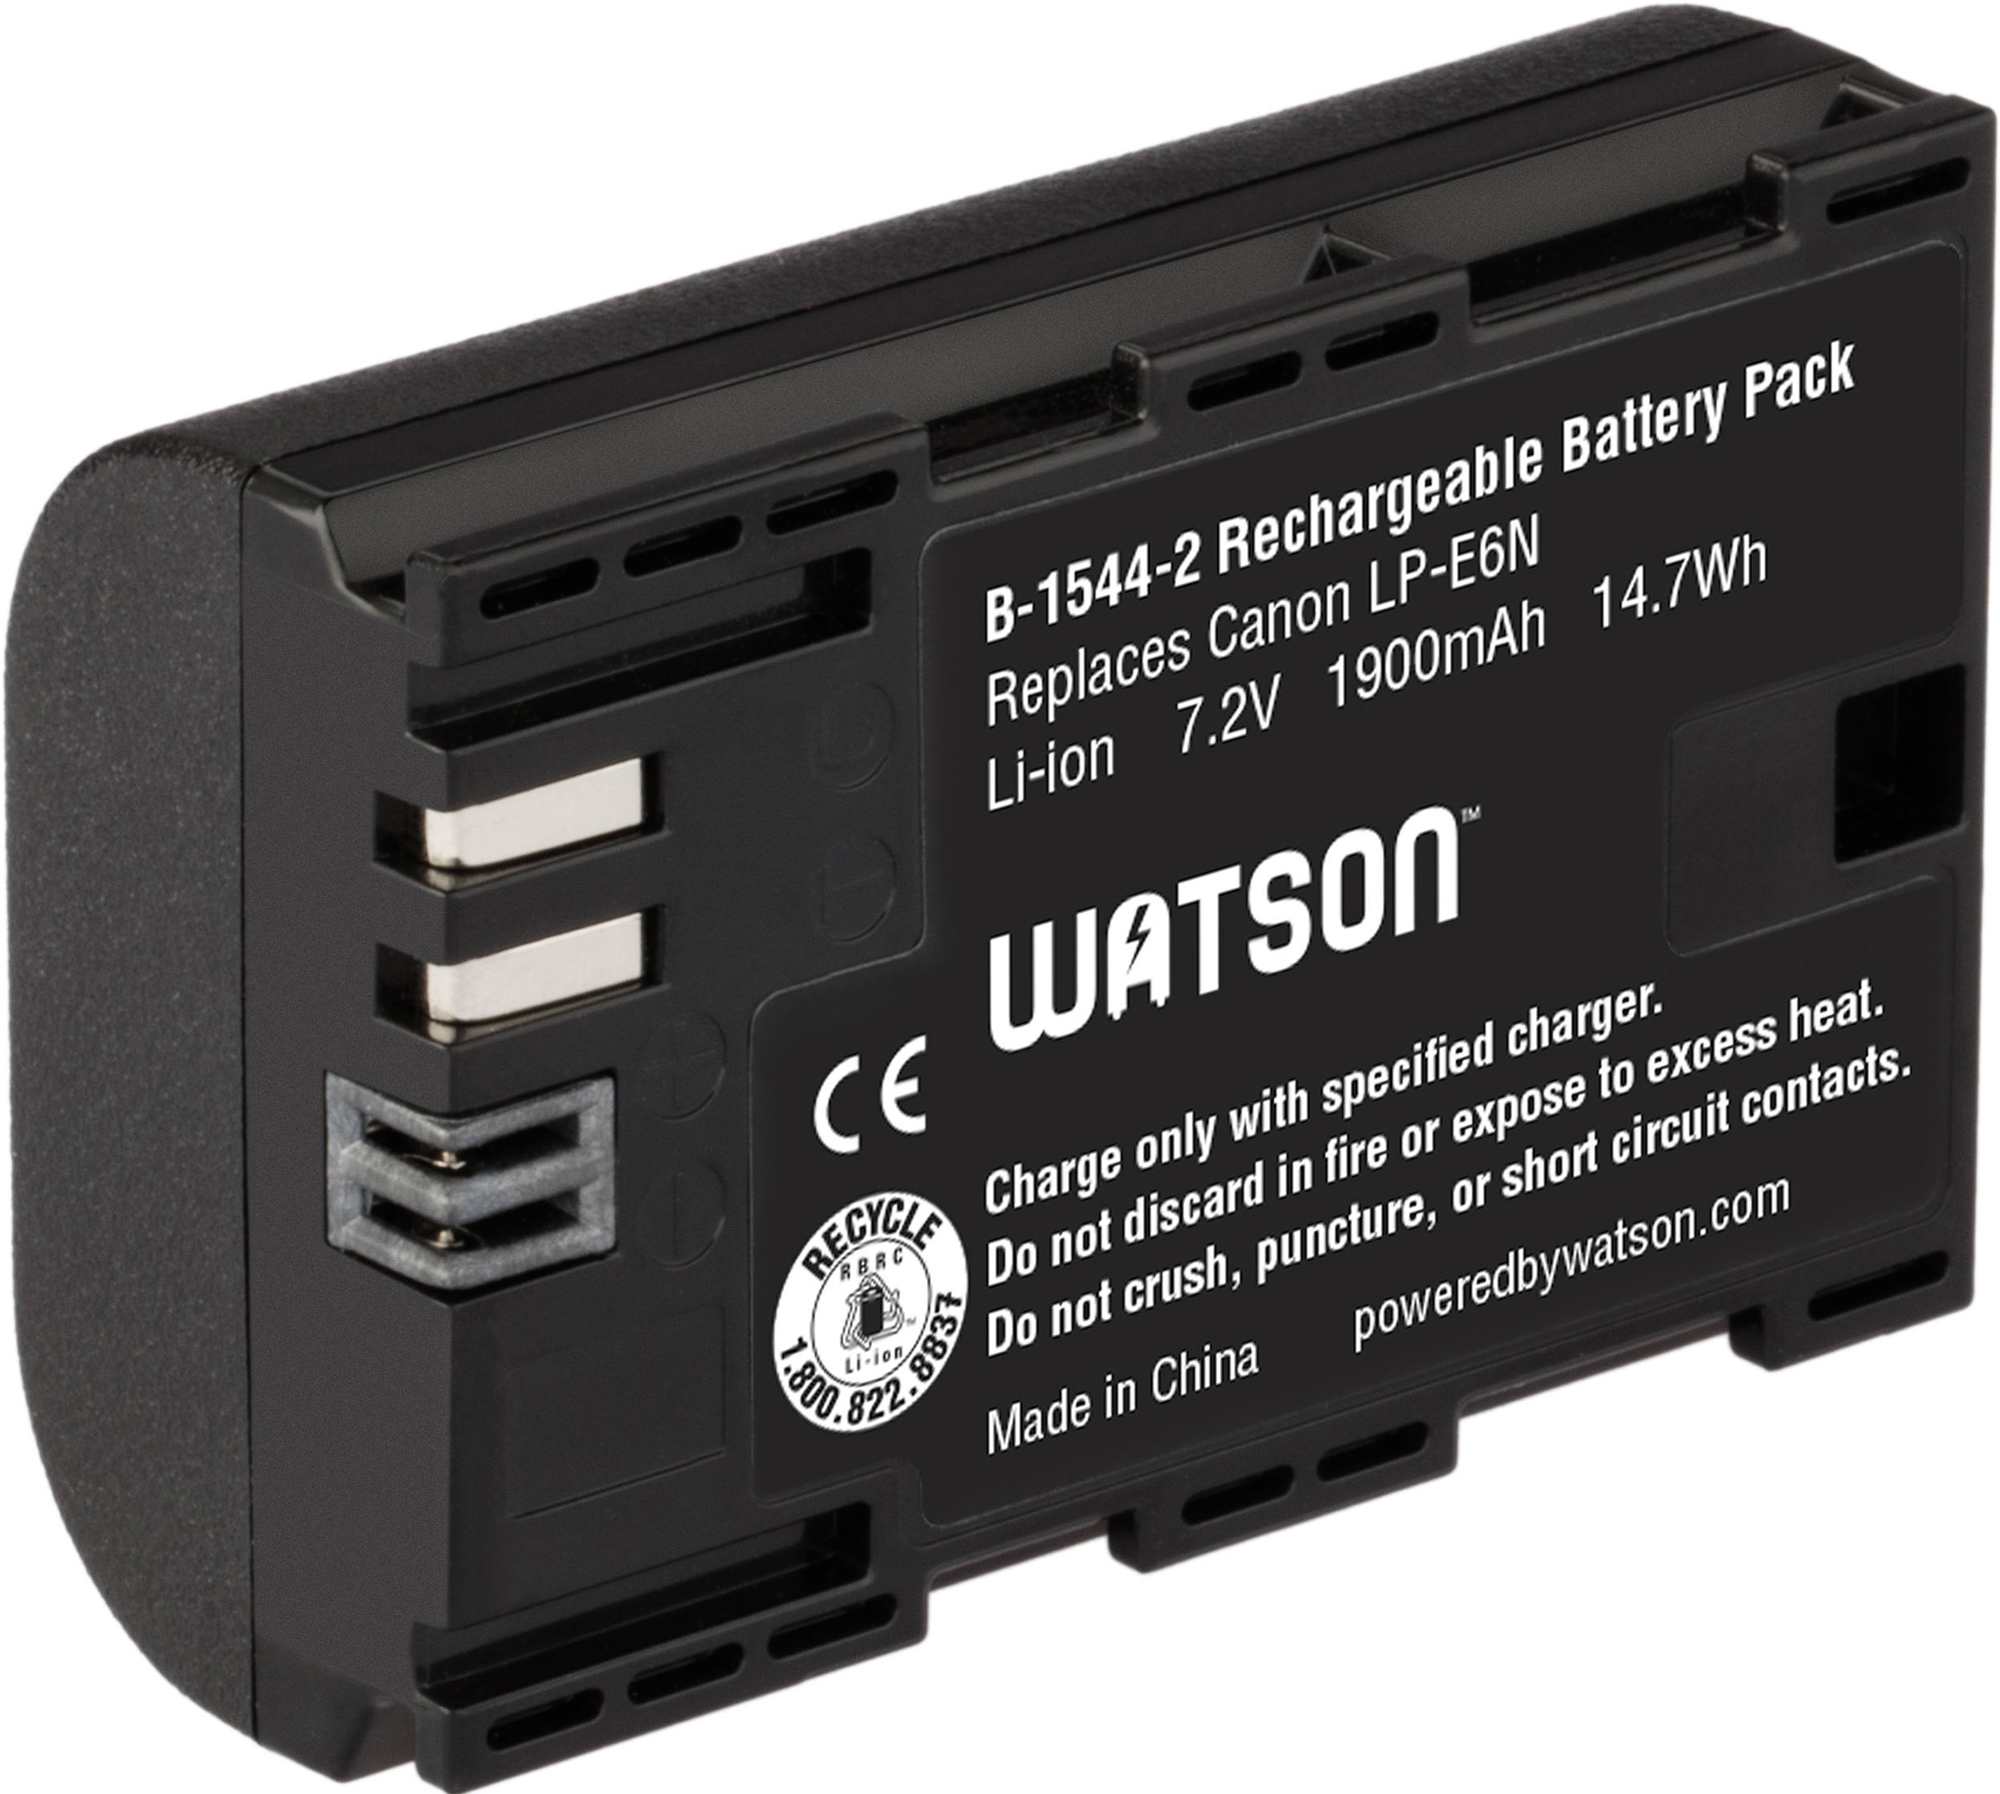 Watson LP-E6N Lithium-Ion Battery Pack